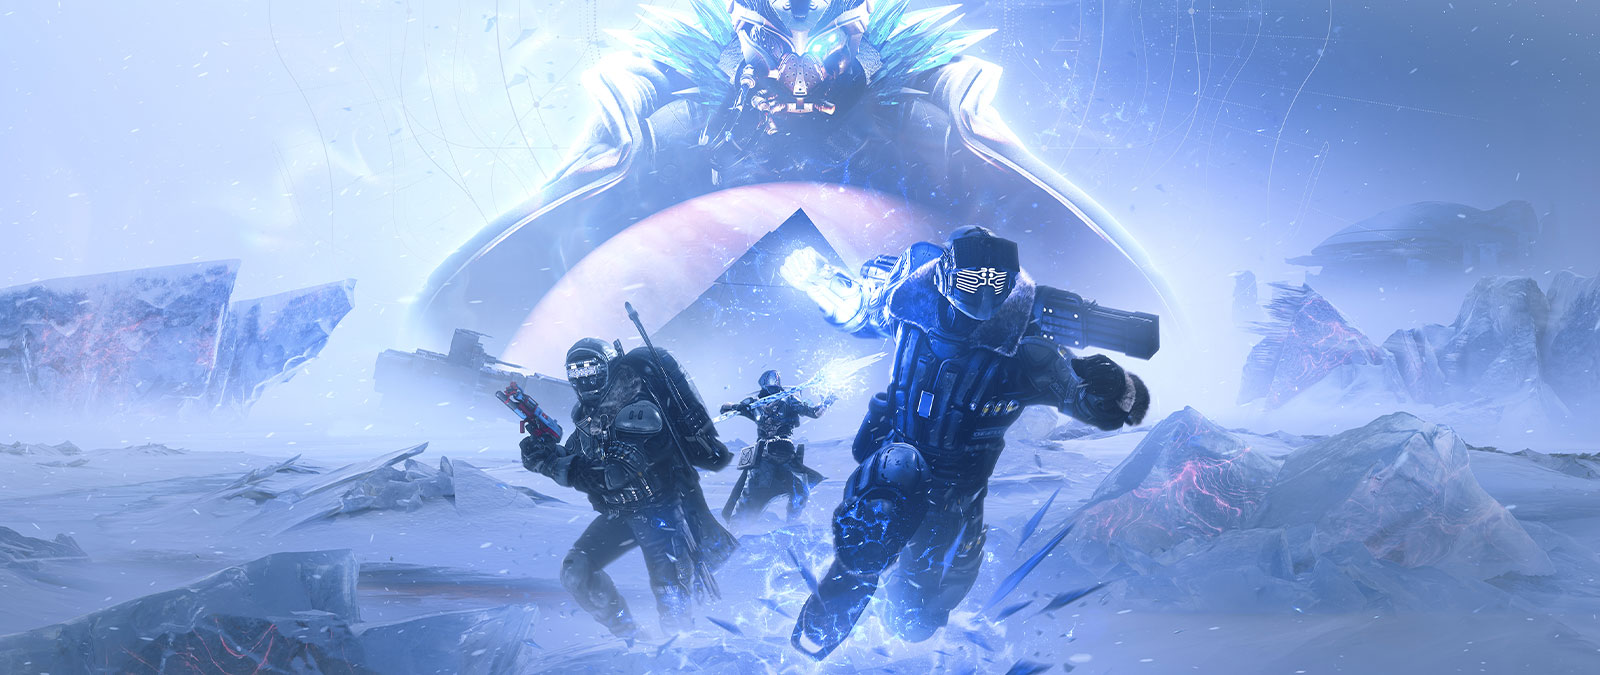 Three guardians use statis powers on an icy tundra